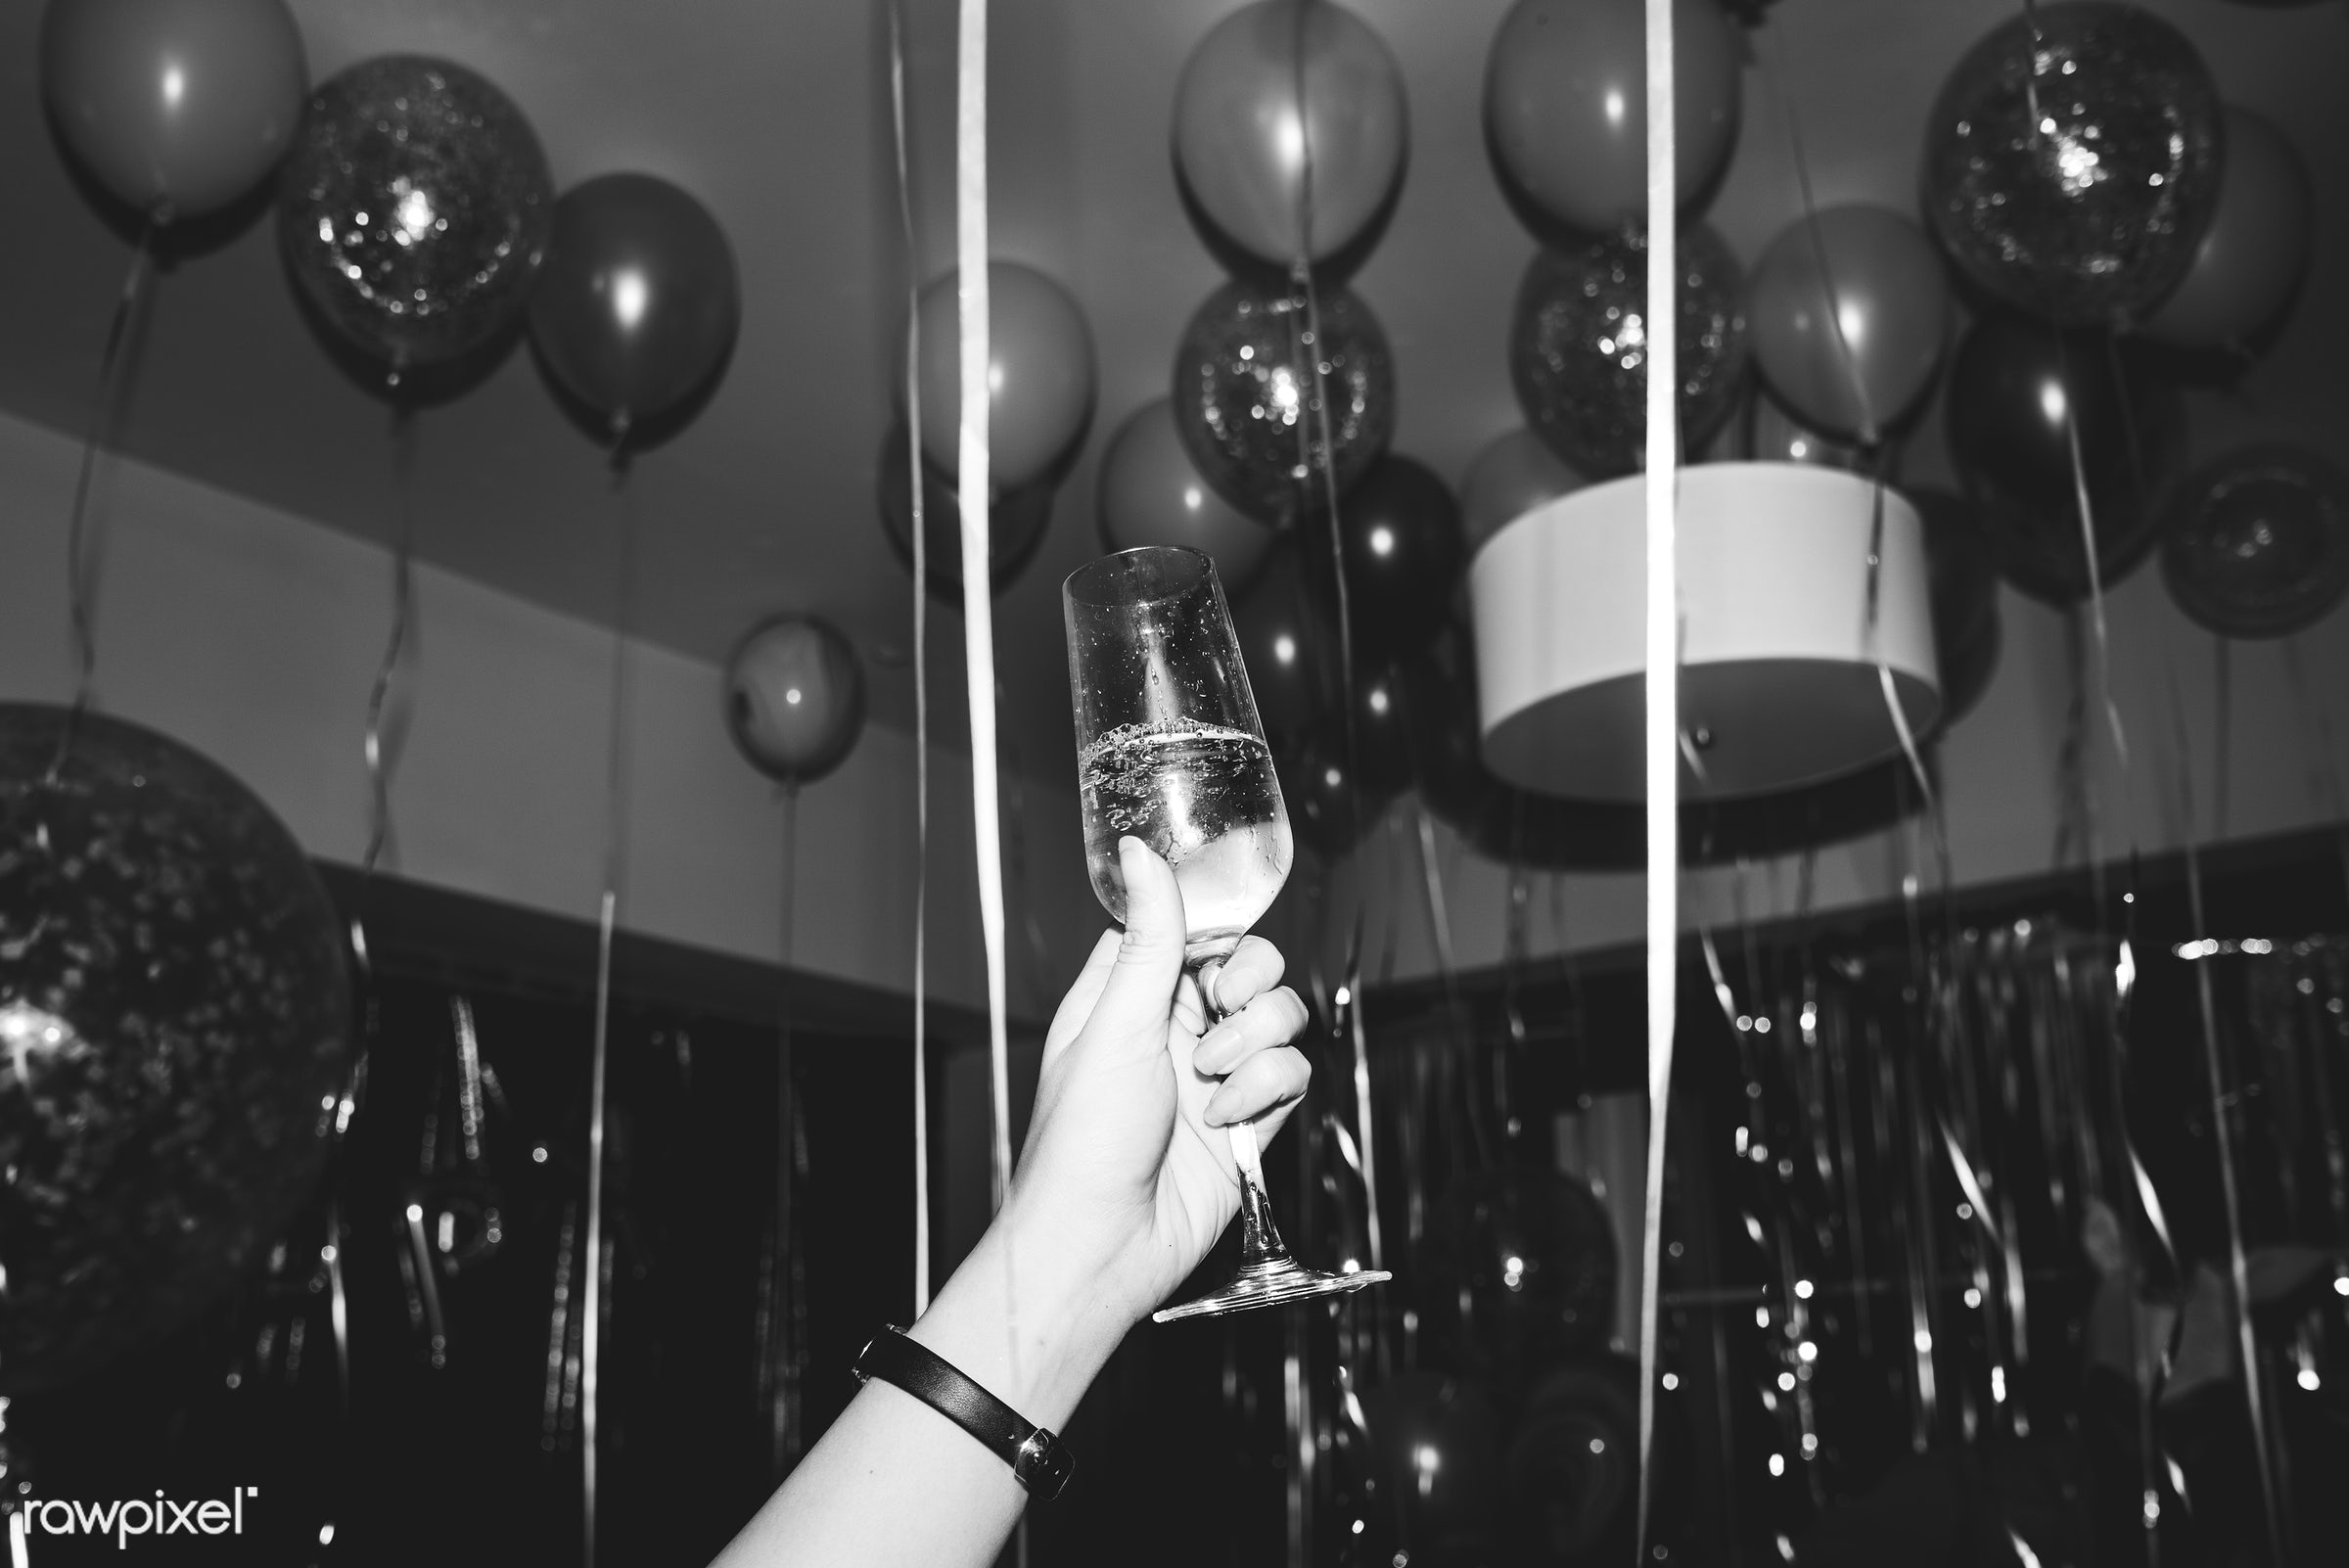 People celebrating in a party - 2018, alcohol, balloons, beverage, birthday, celebrate, celebration, champagne, cheers,...